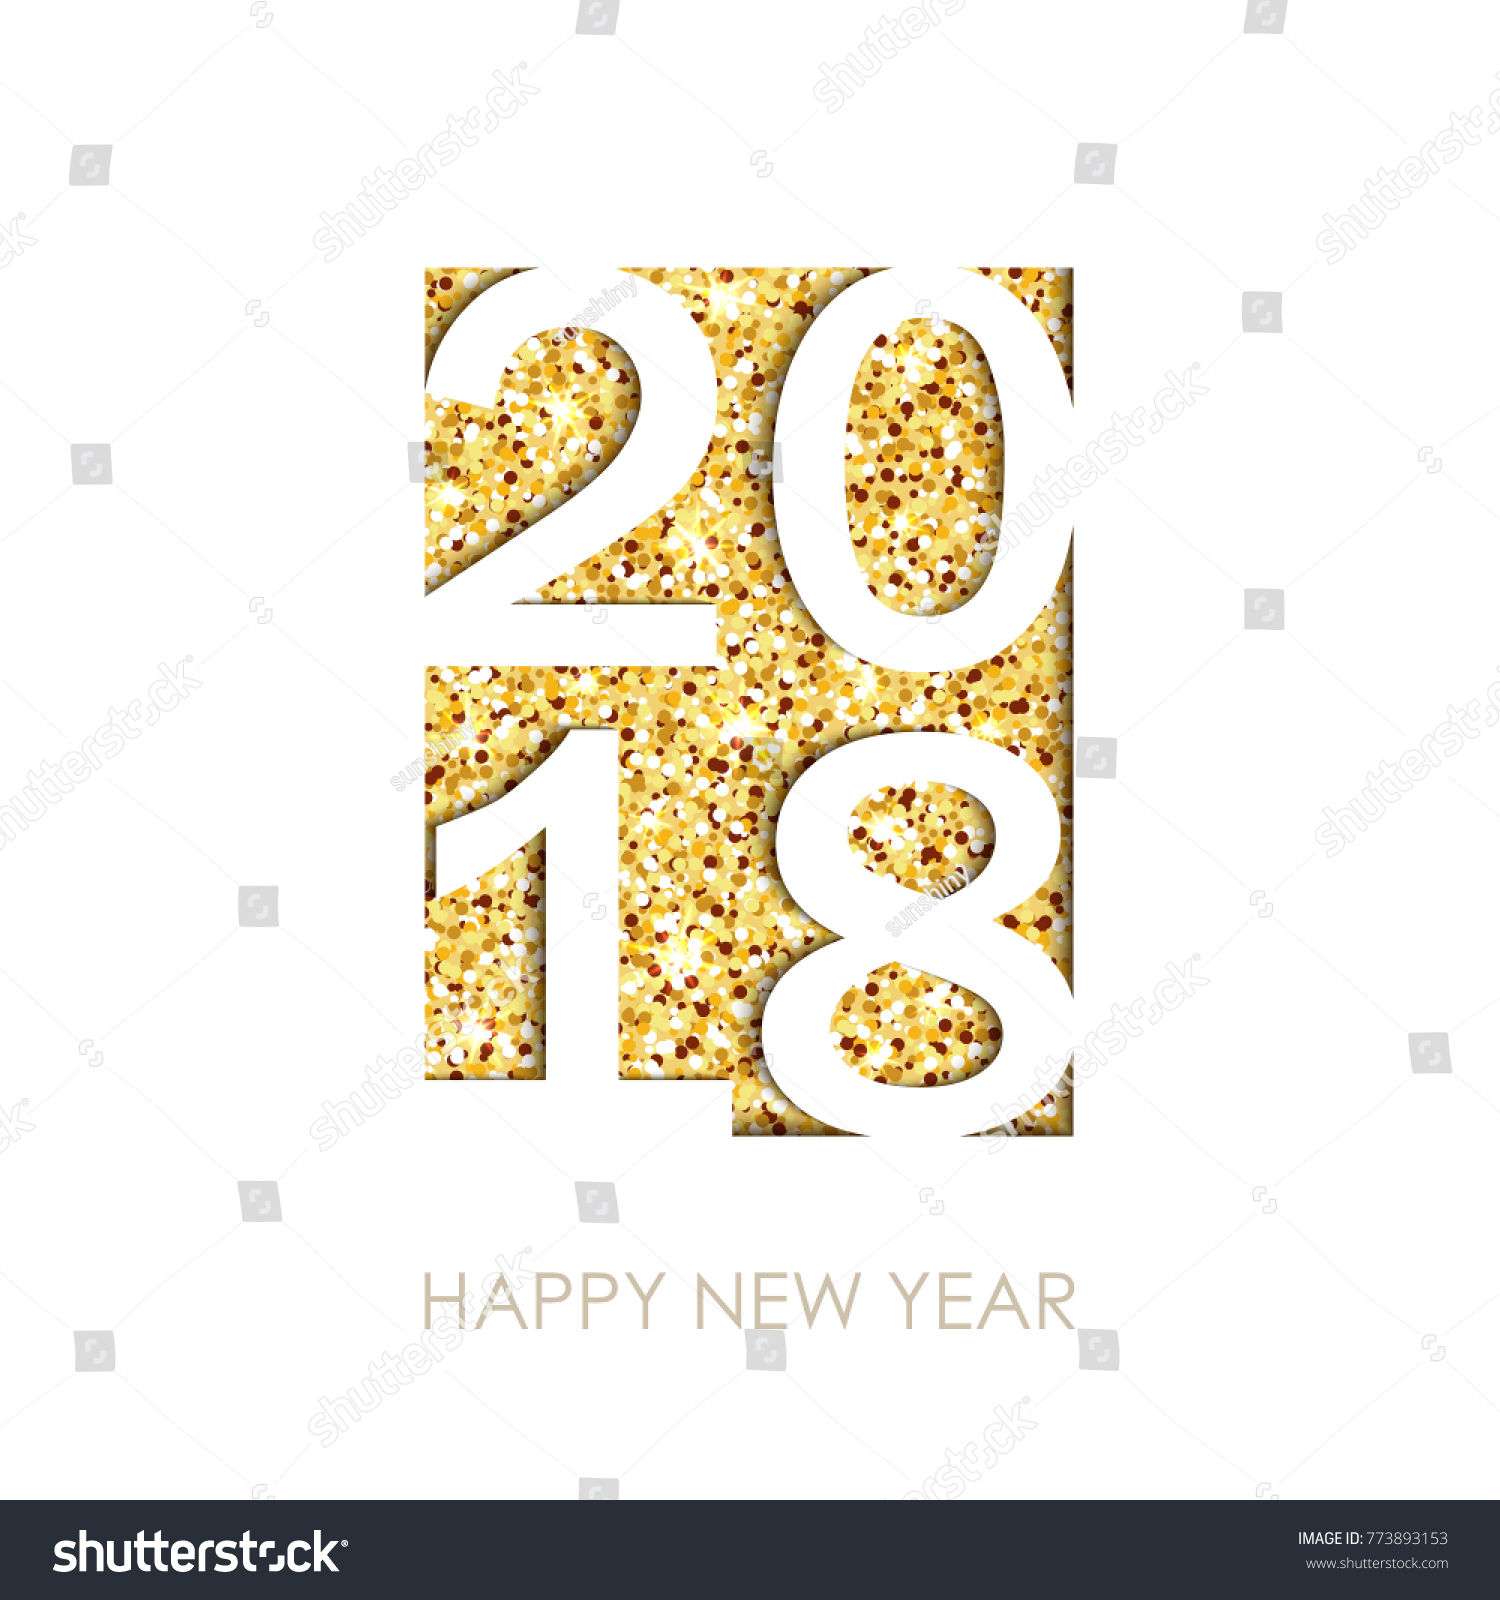 2018 happy new year text greeting stock illustration 773893153 2018 happy new year text for greeting card calendar invitation white background with kristyandbryce Images